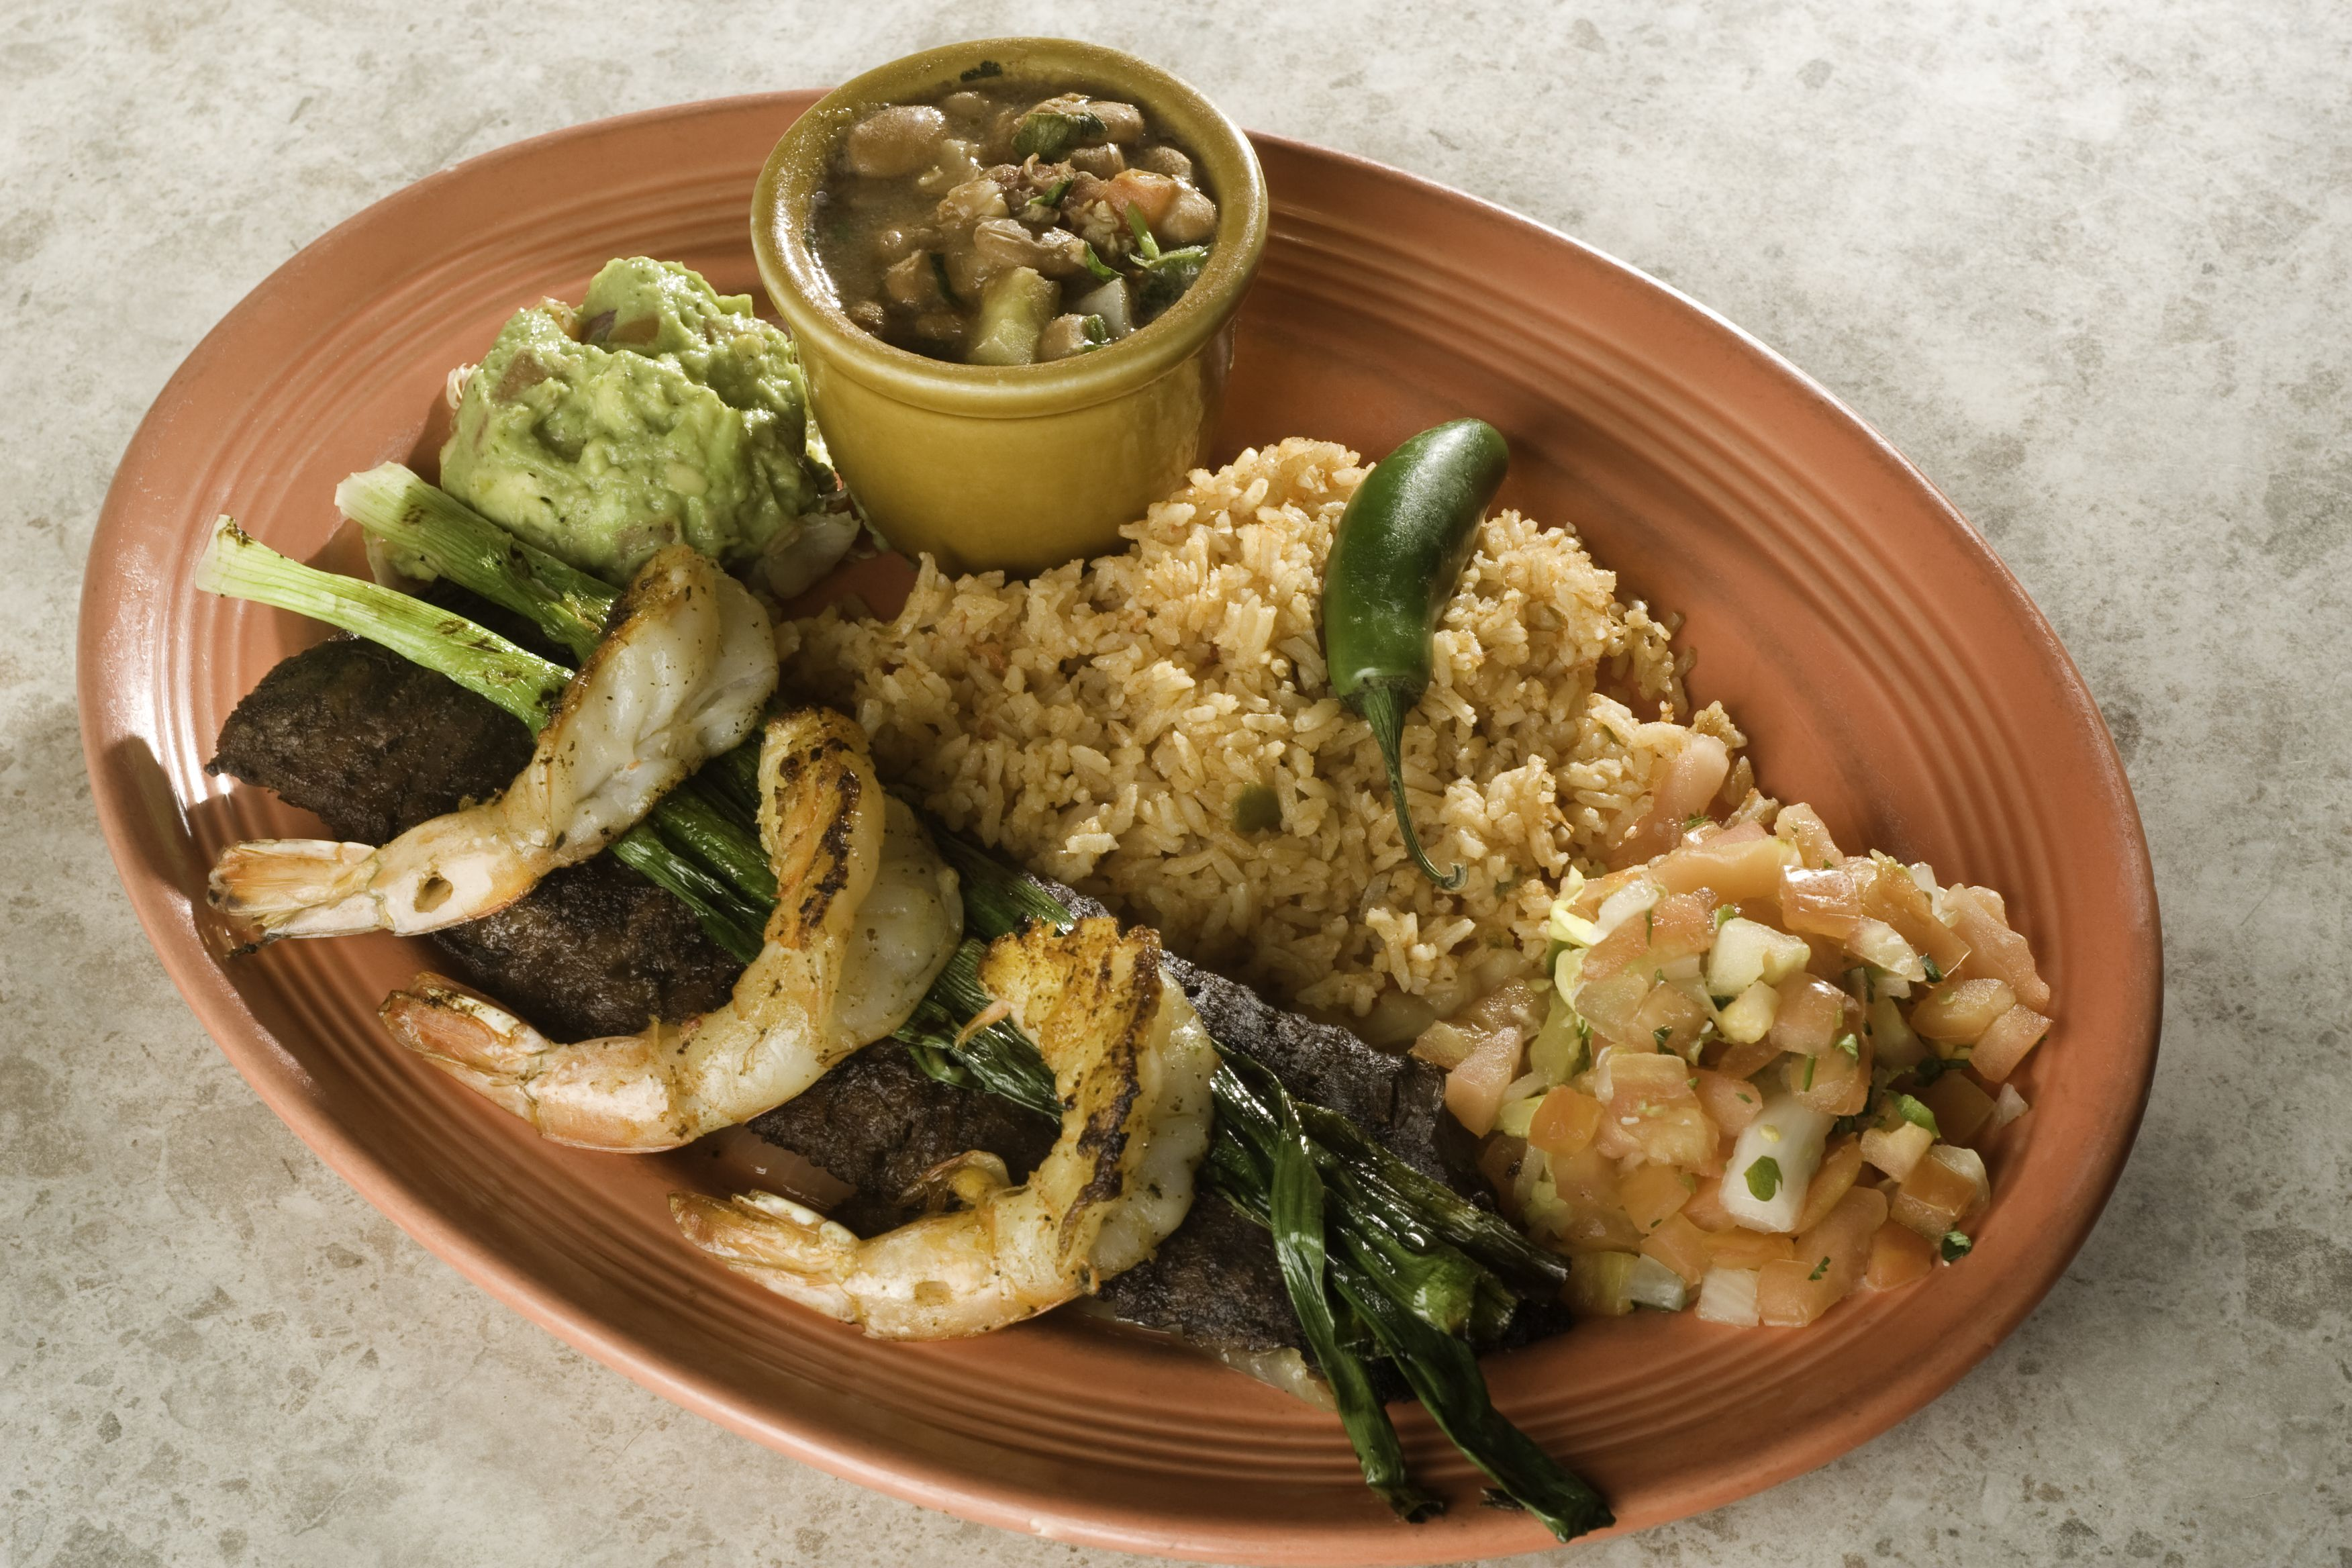 Come in today and enjoy a fresh, authentic Tex-Mex meal.